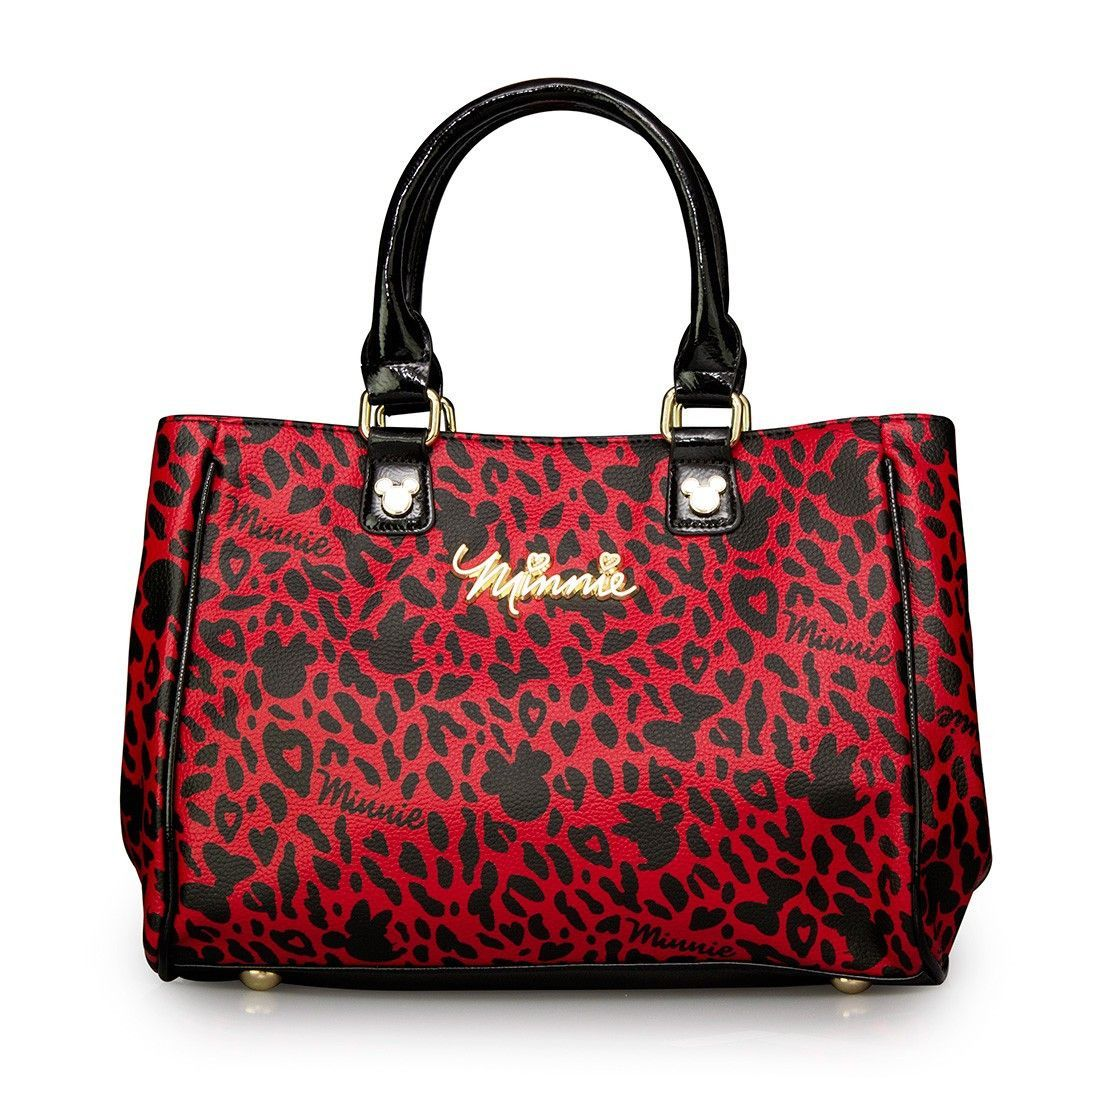 4c696711d06 Disney Minnie Mouse Red and Black Leopard Print Fashion Tote Purse Hand bag